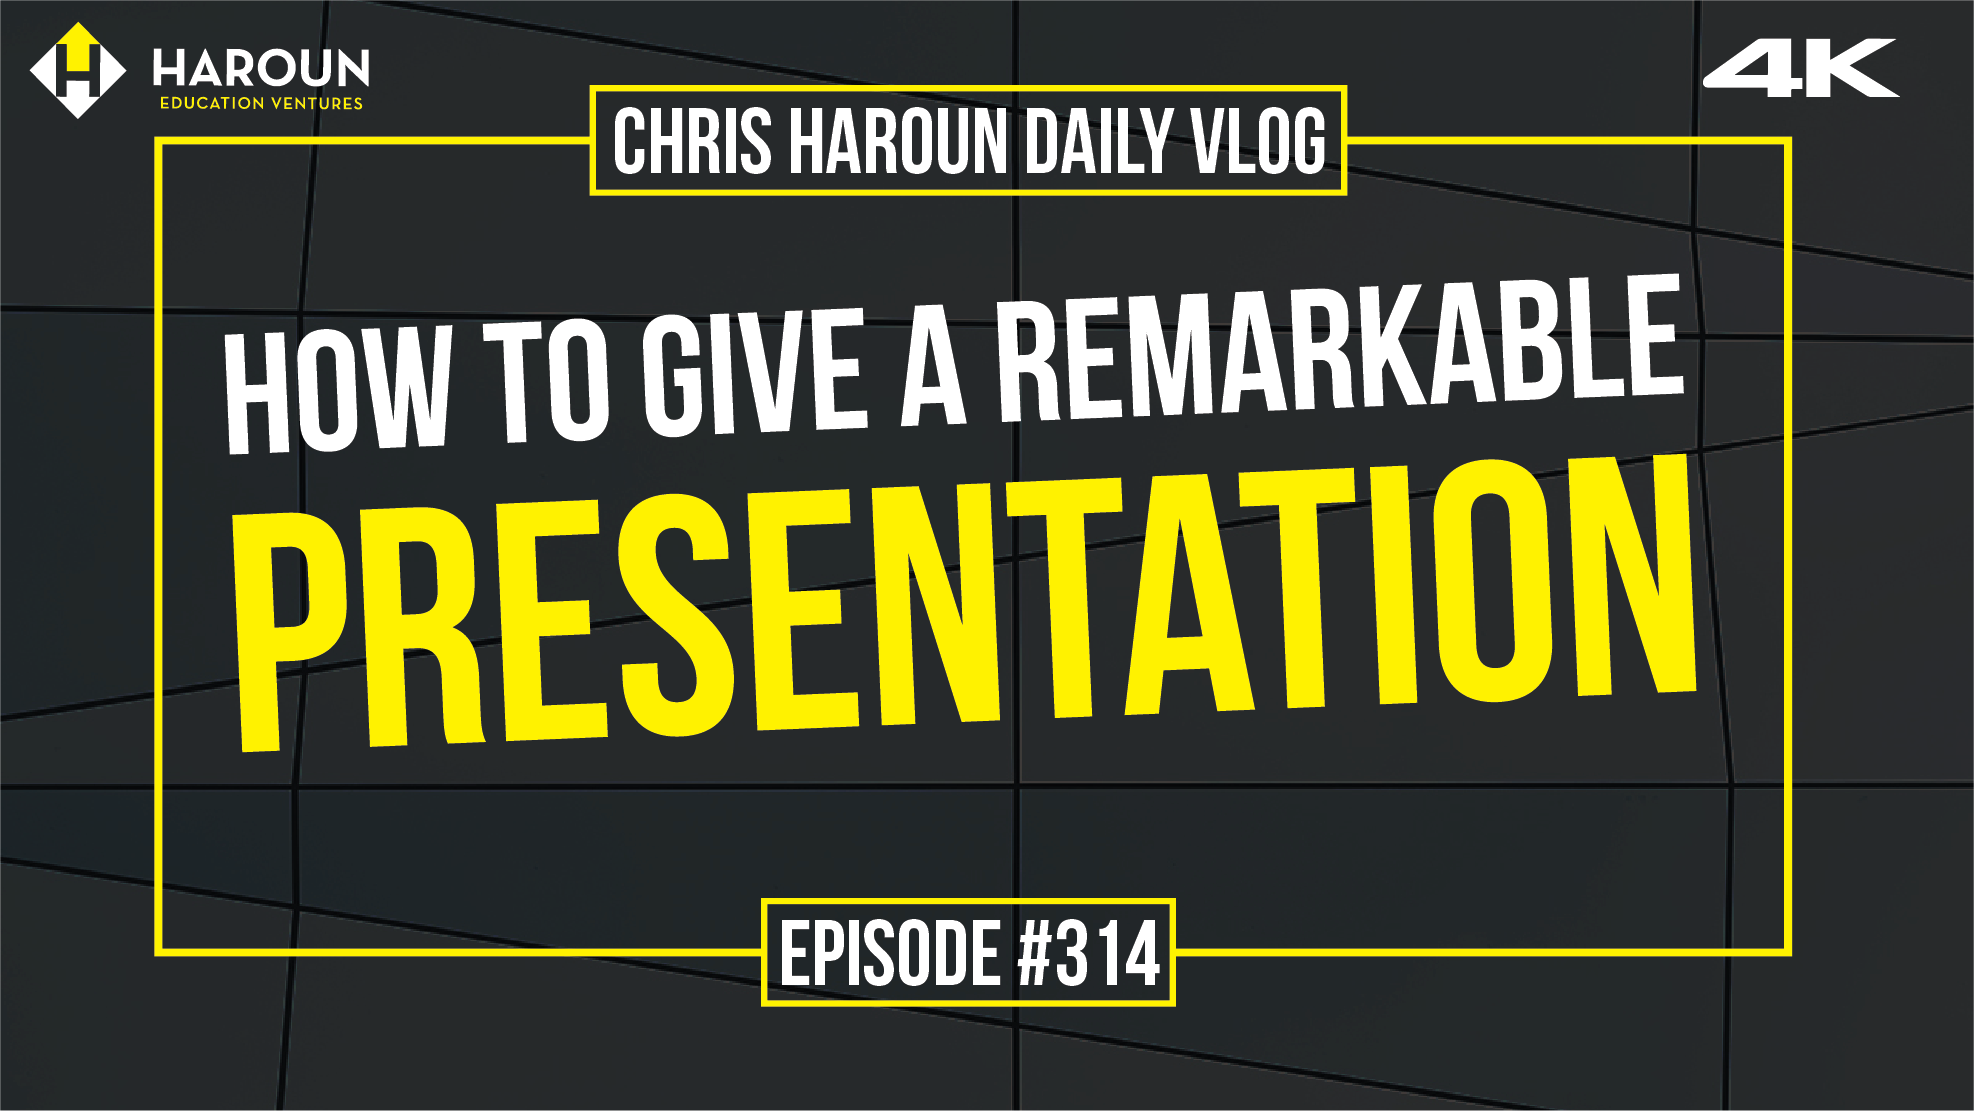 VLOG_314_6_10_2019_How to Give a Remarkable Presentation.png